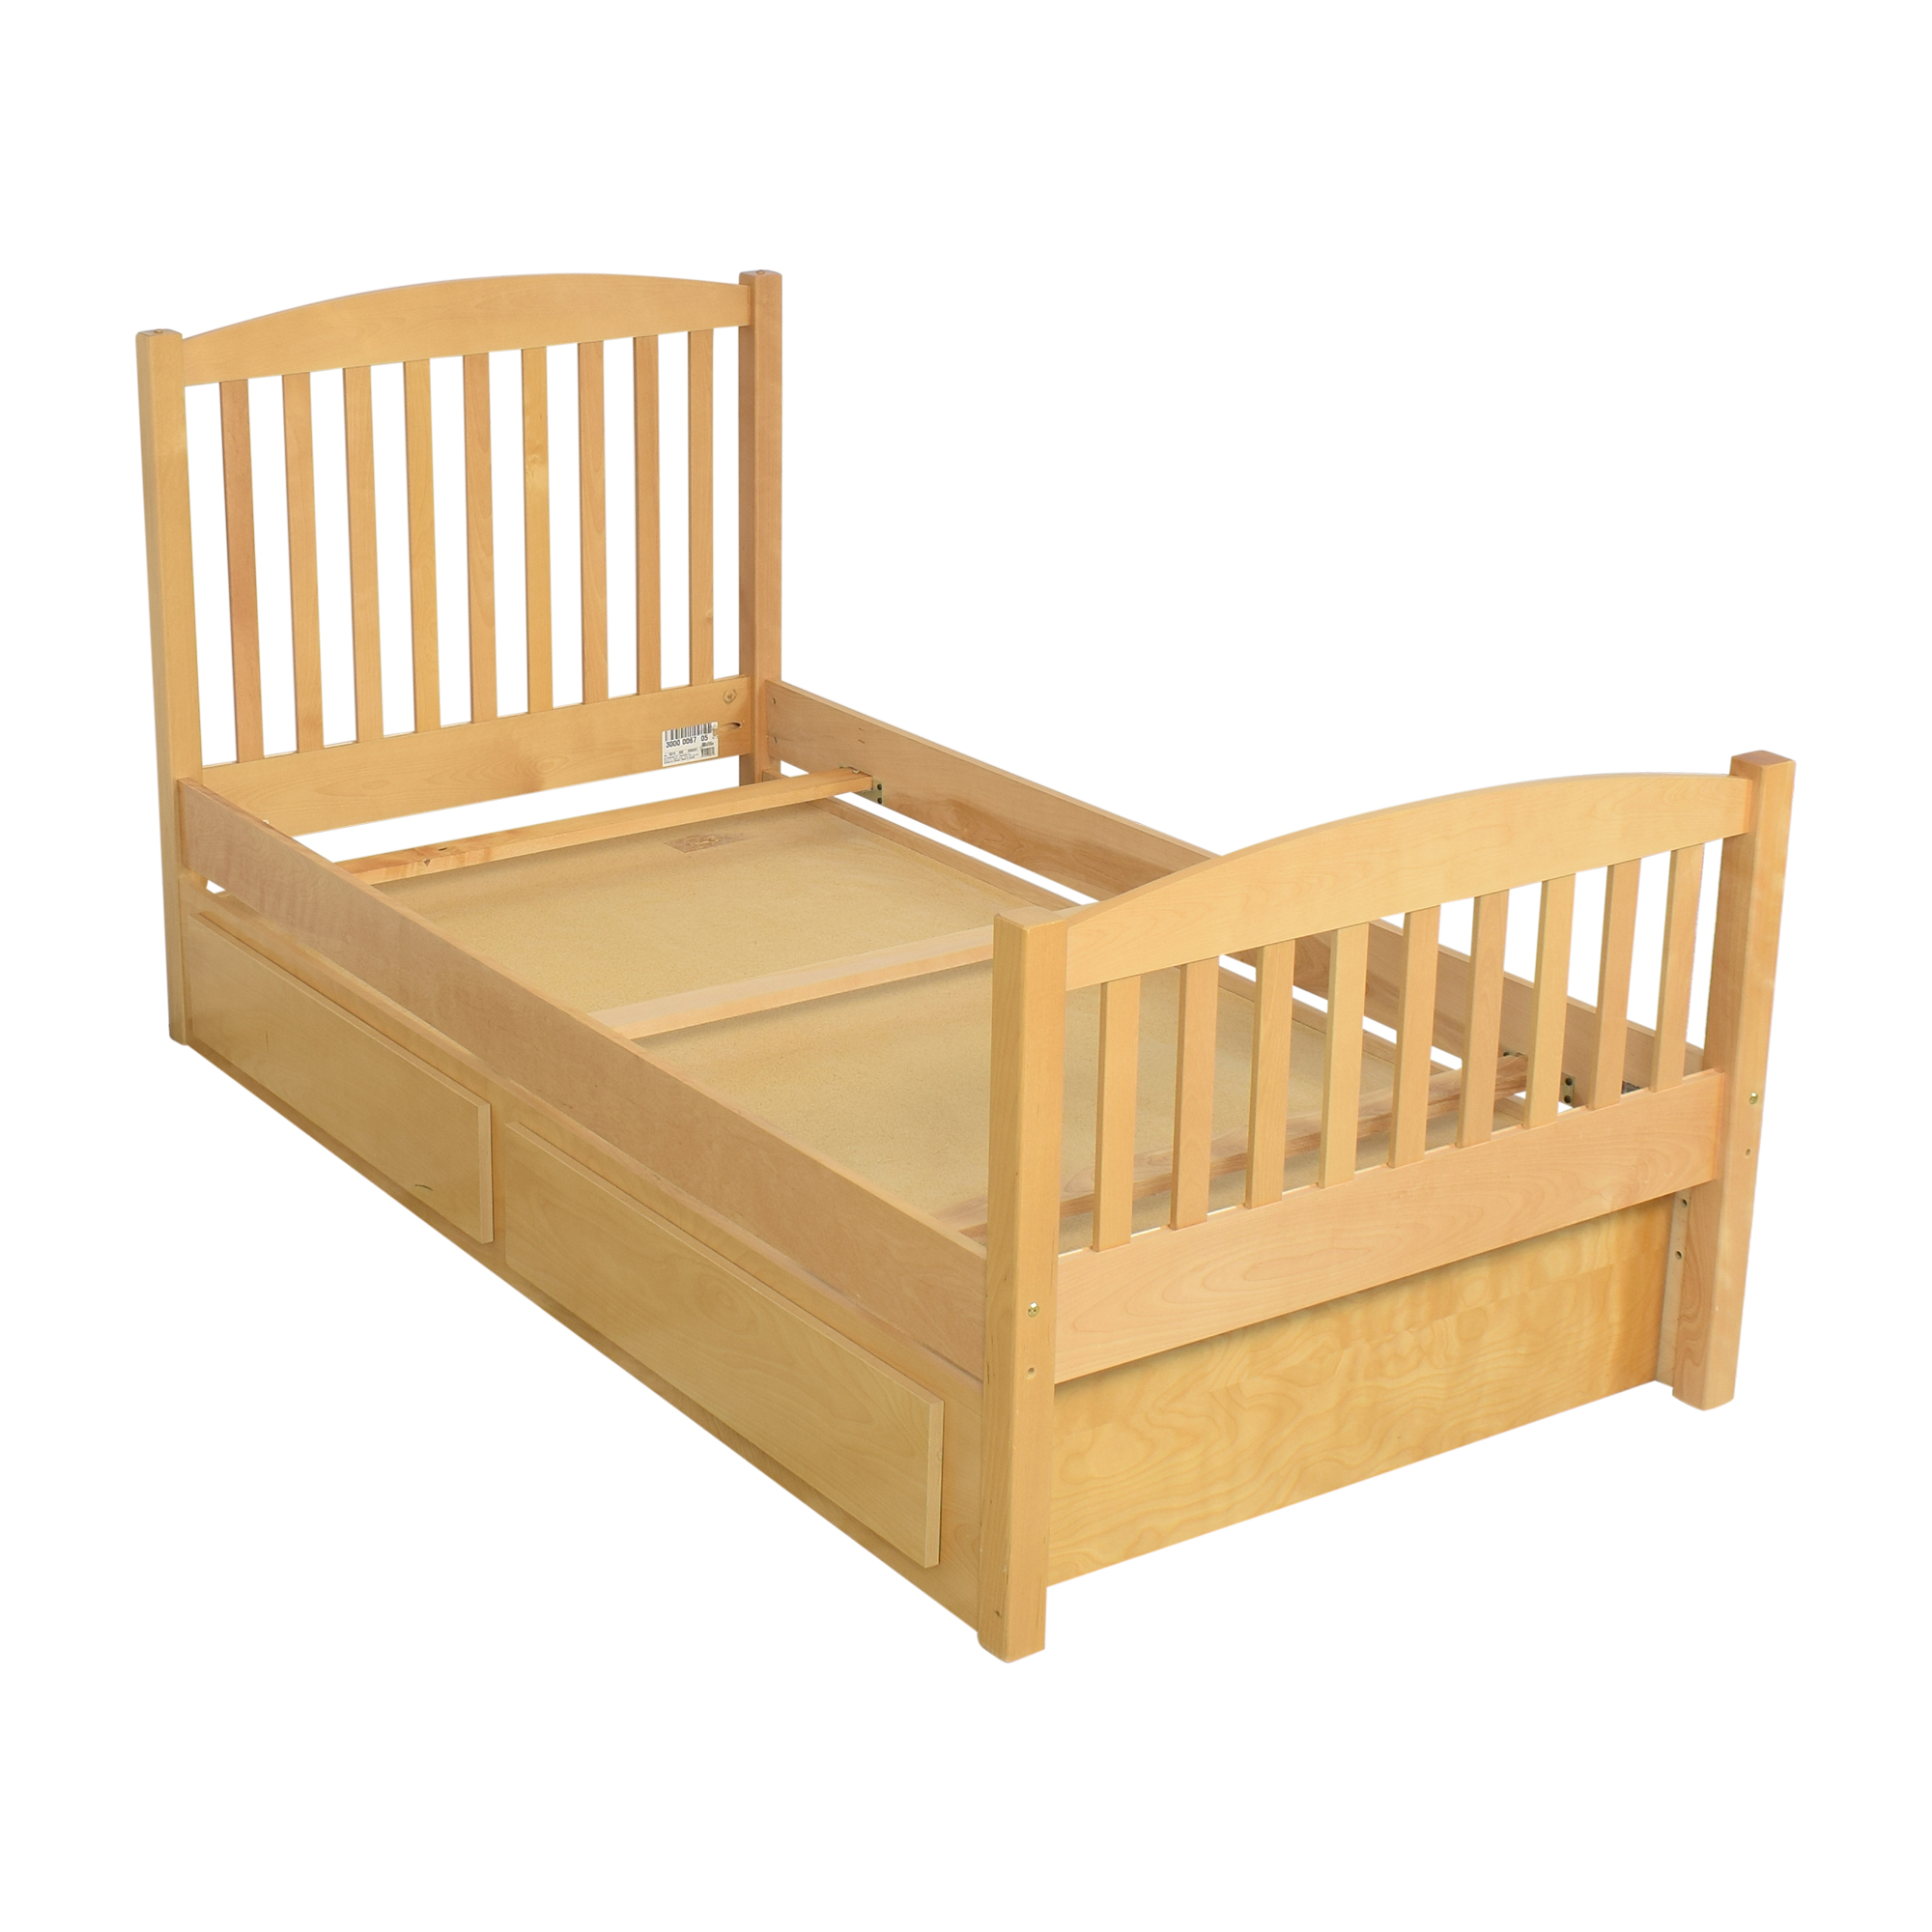 AP Industries Twin Bed with Storage / Bed Frames